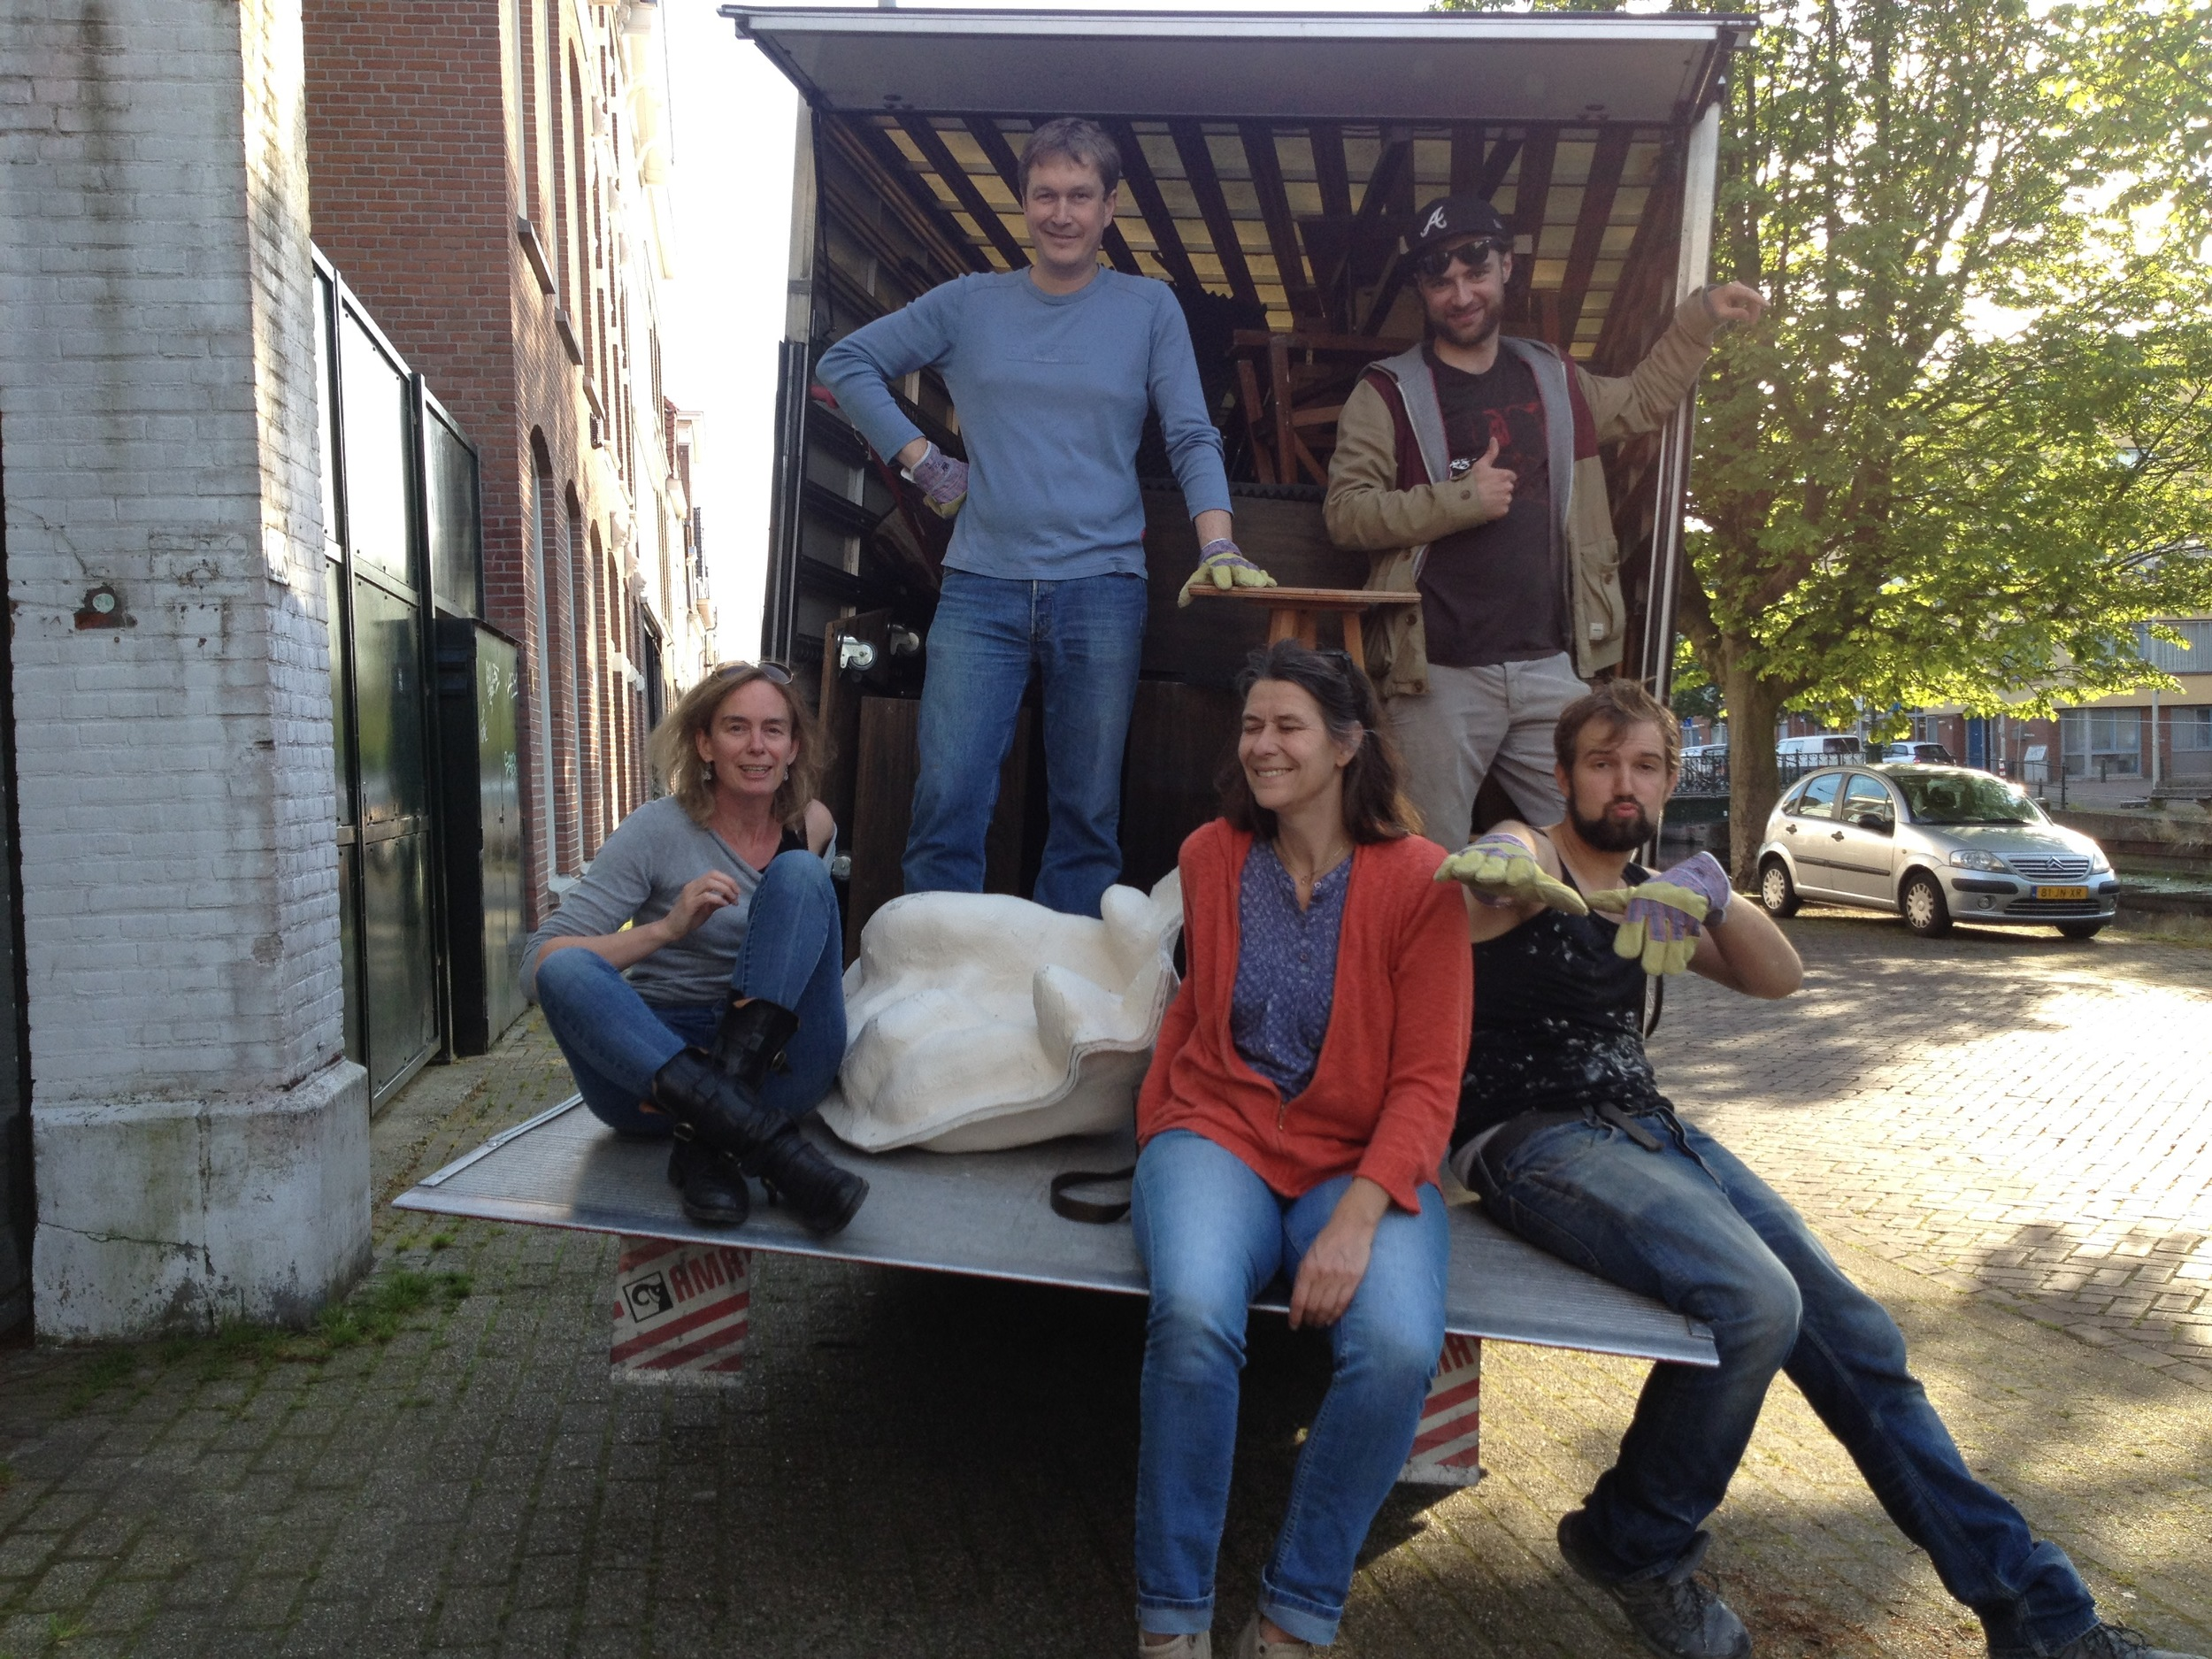 The young ones from See Lab helping the old ones move.